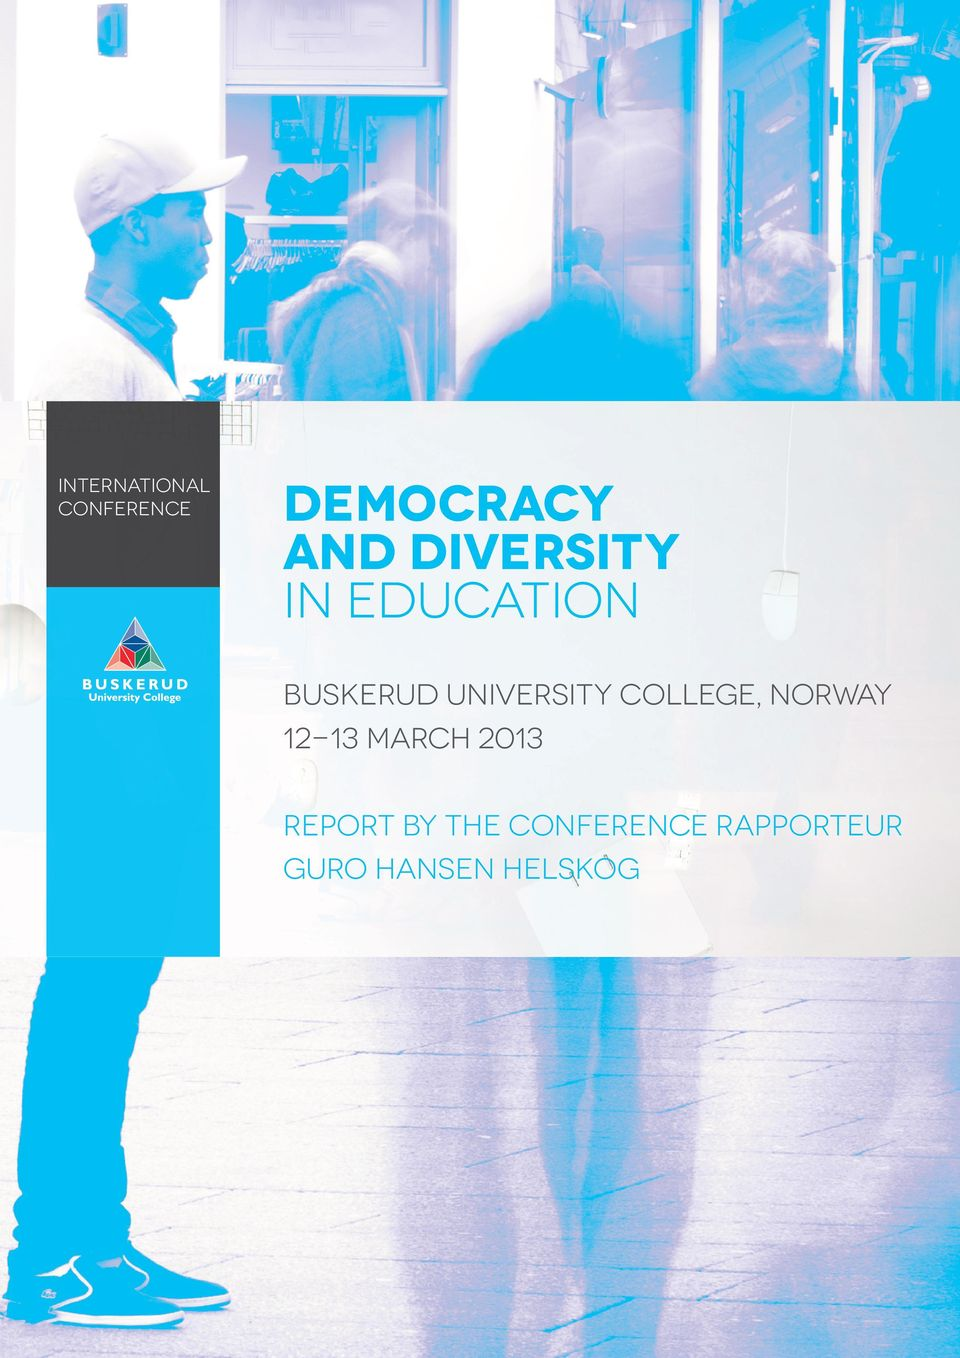 College, Norway 12-13 March 2013 Report by